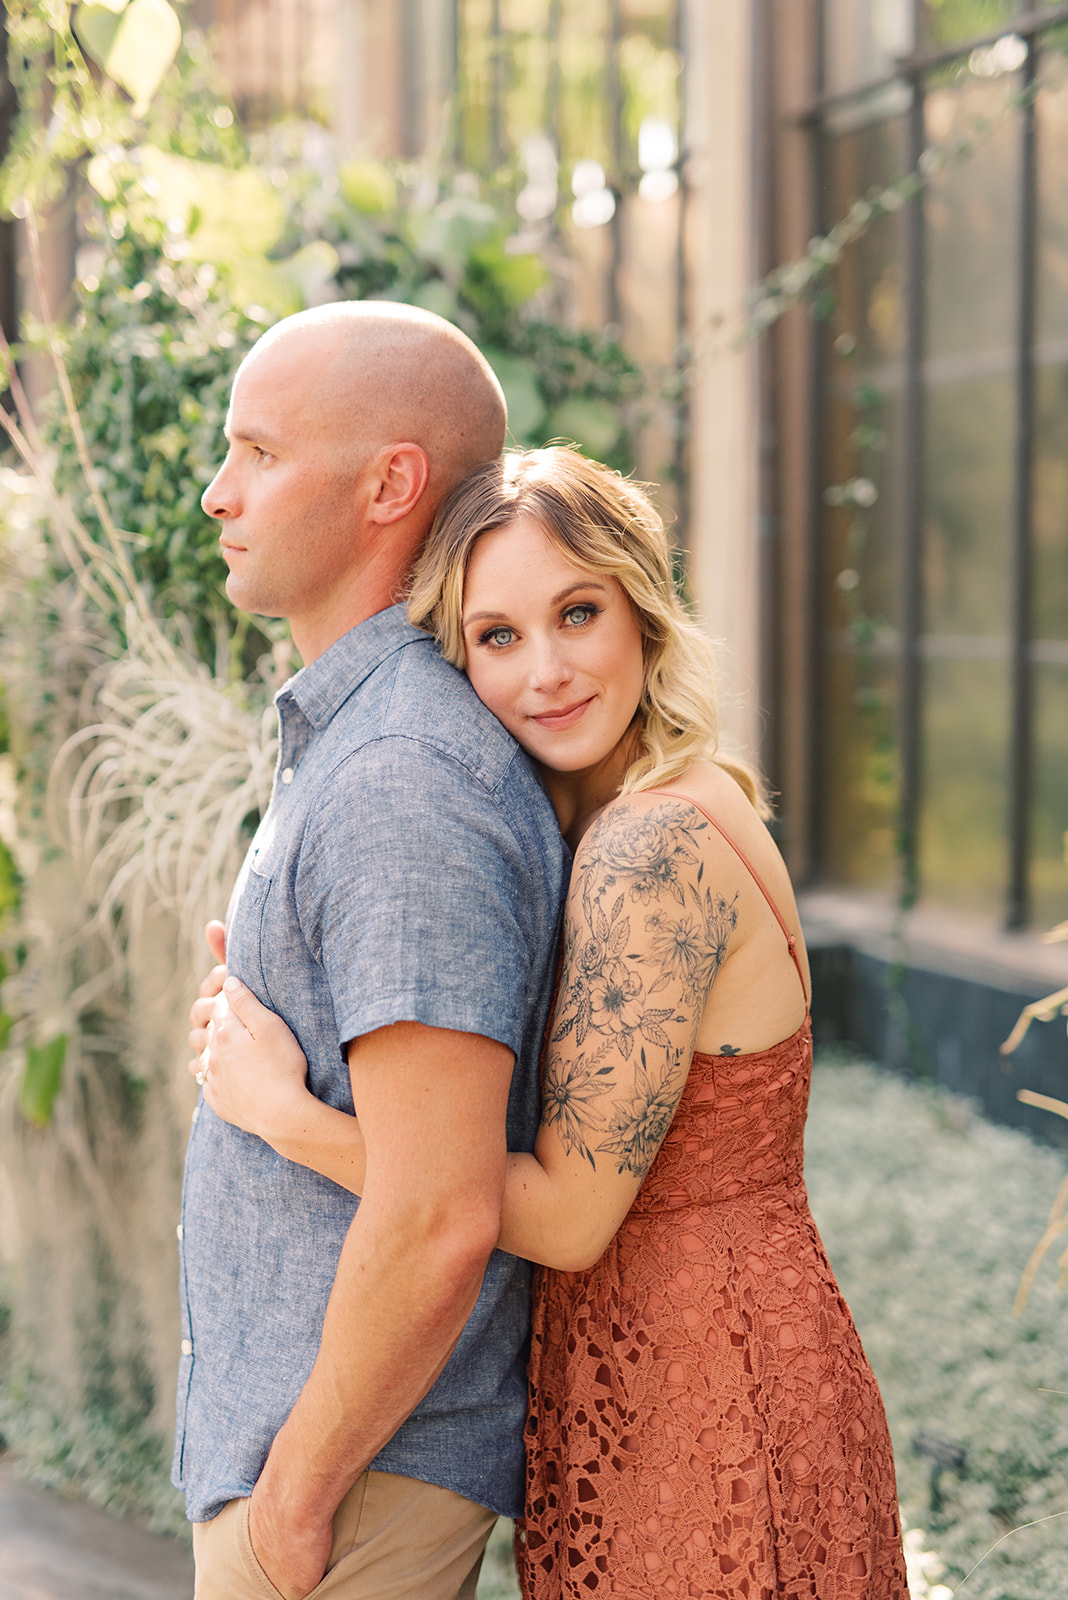 Garden-inspired engagement session at Longwood Gardens.